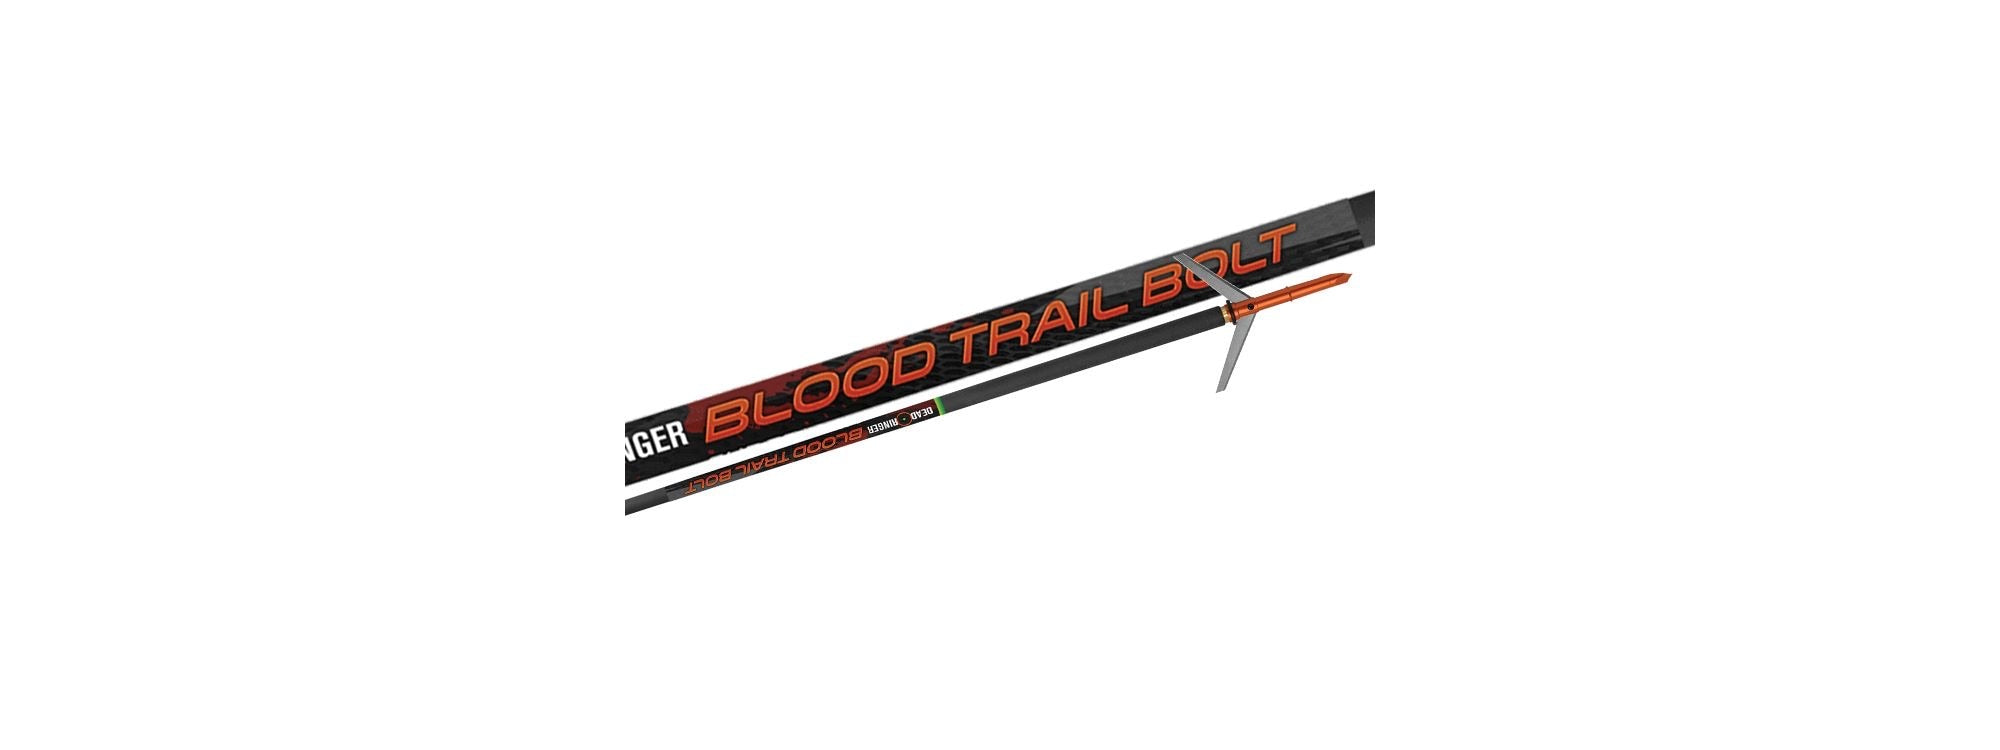 Blood Trail Crossbow Bolts 3 Pacl